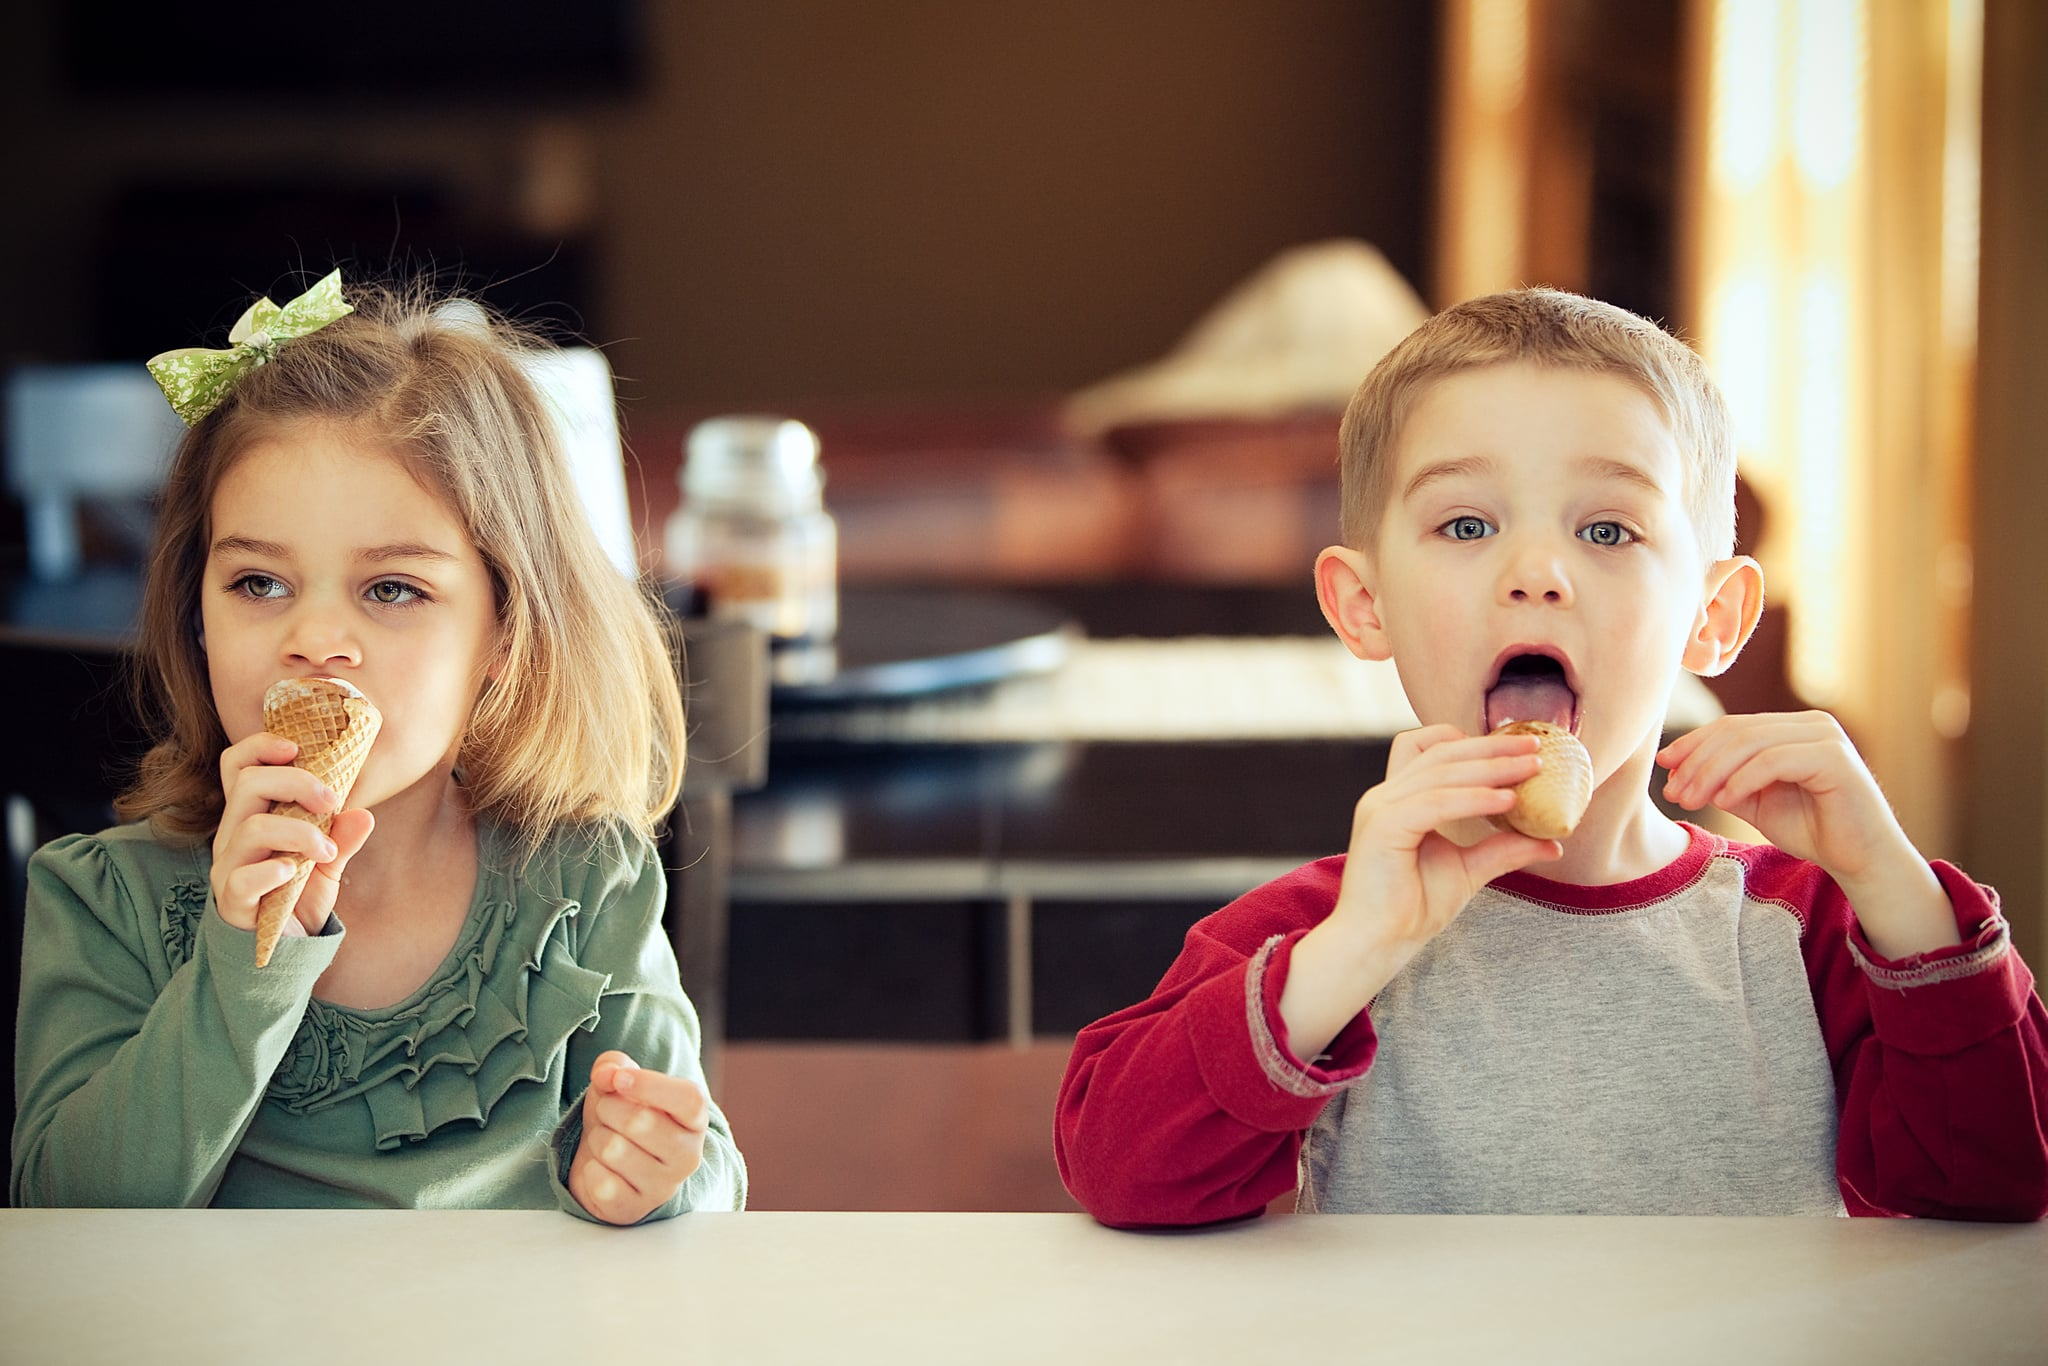 Boy and girl twins at home seated at counter in their kitchen eating ice cream cones, boy is caught wide eyed mid lick.